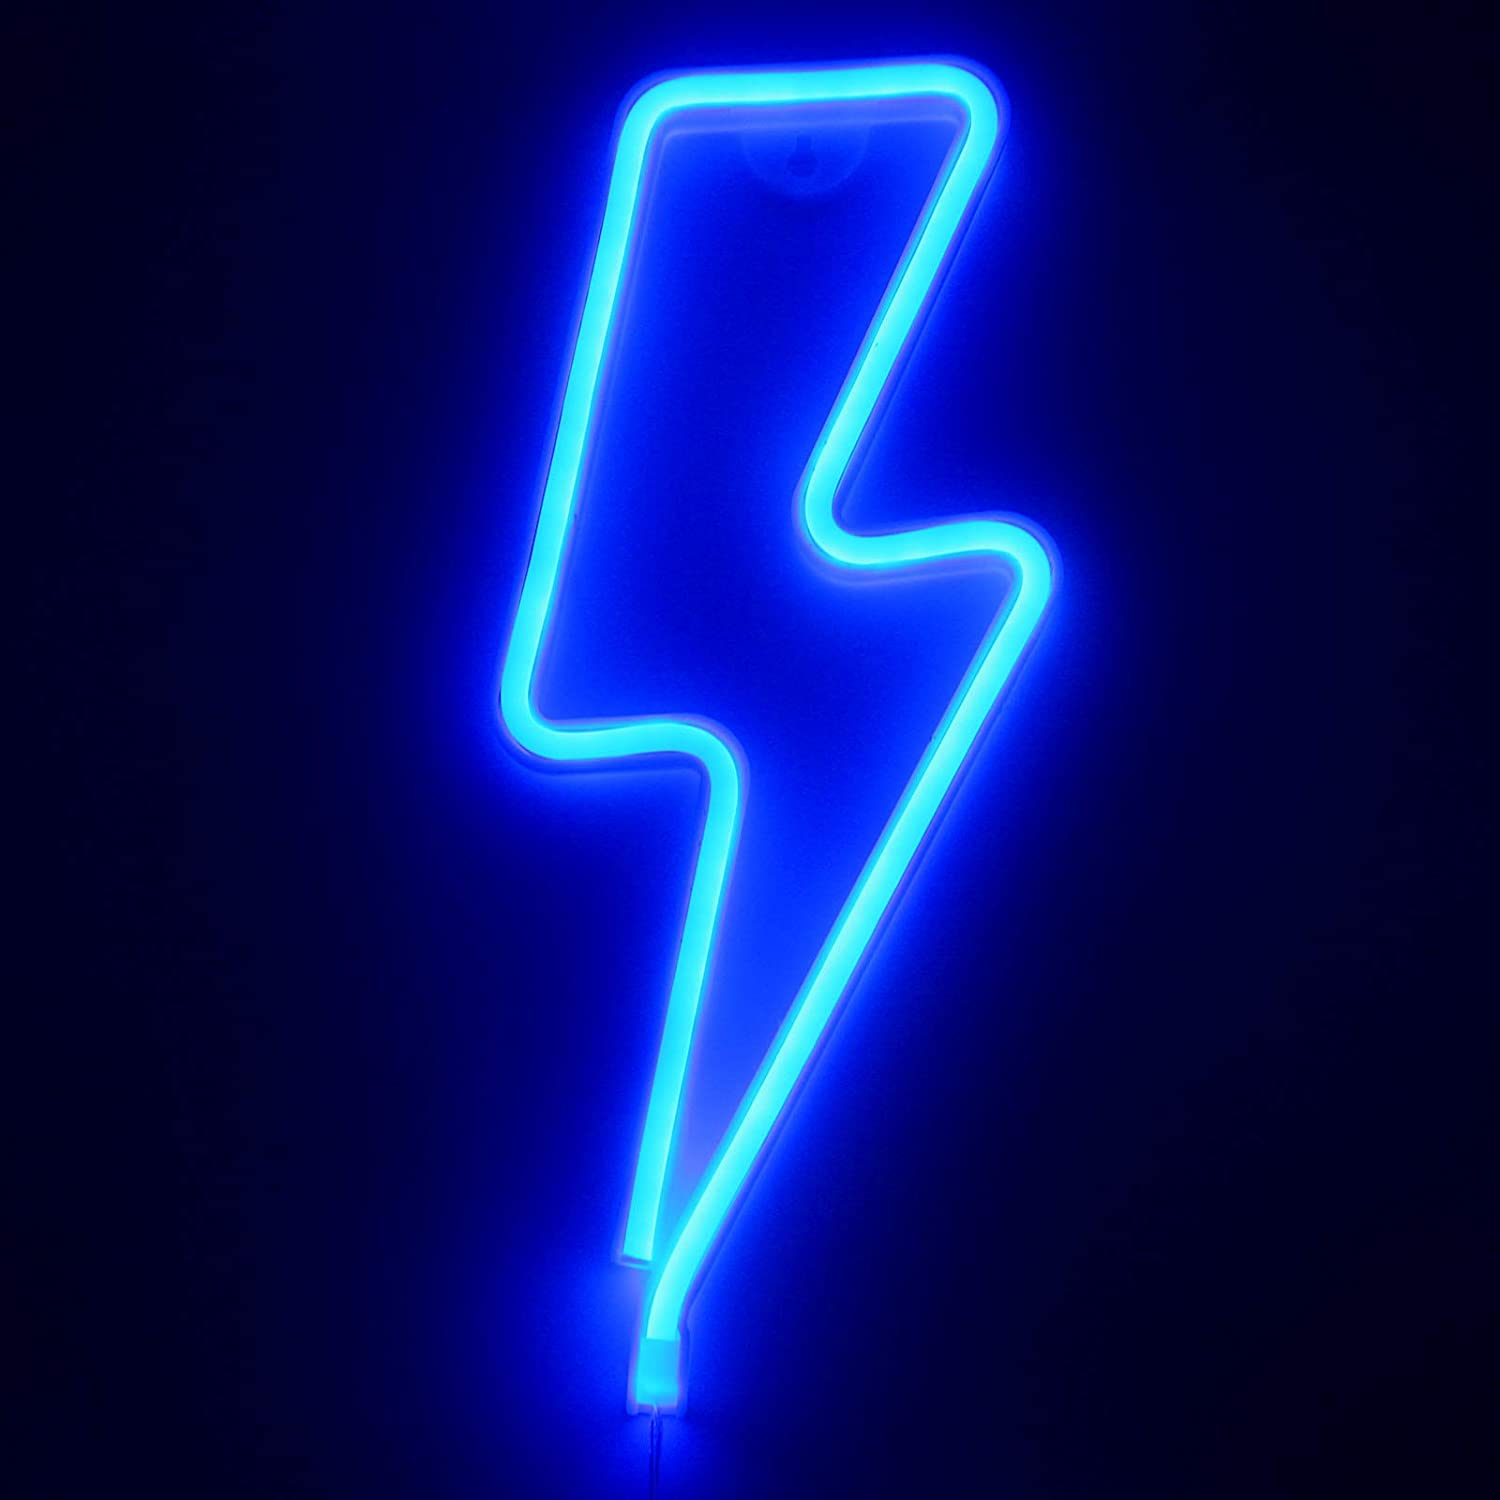 SANJICHA LED Lightning Neon Signs Bolt Lights Battery and USB Operated Art Decorative Lights Wall Décor for Birthday Gifts, Kids Bedroom, Festival Party (Blue)